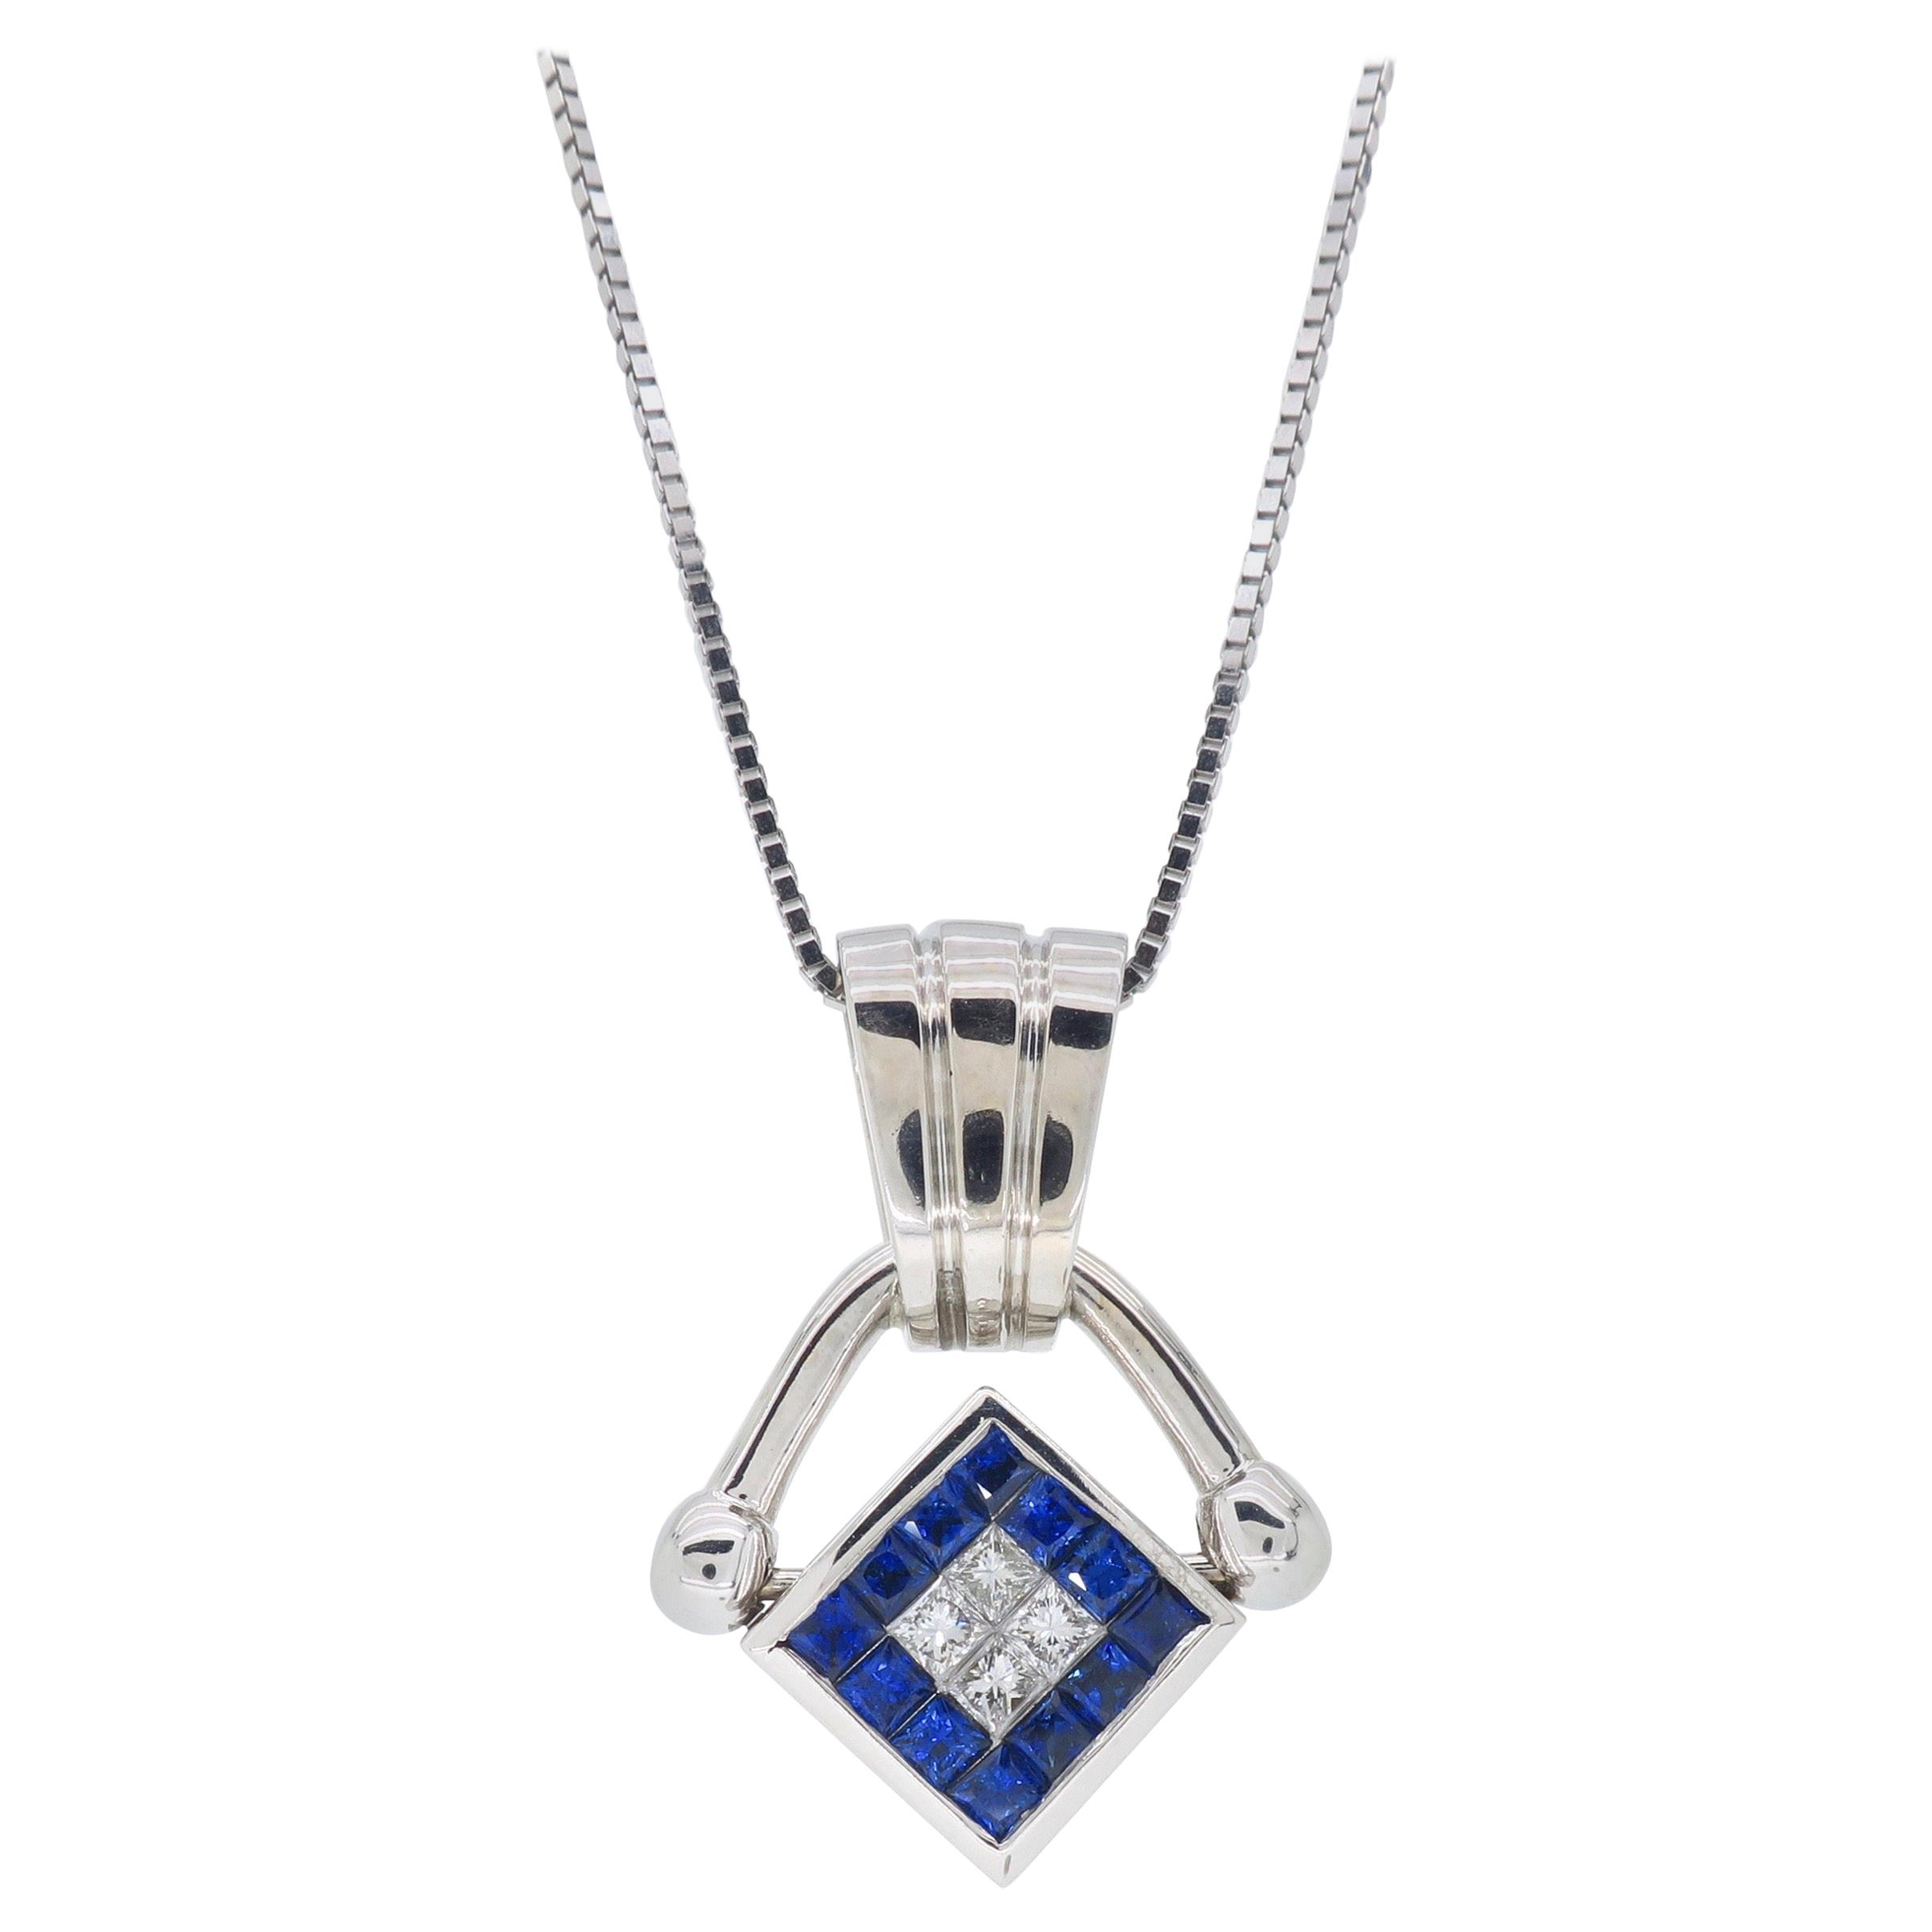 Buccellati Jade Pink And Blue Sapphire Pendant Necklace/pin Intended For 2019 Reversible Diamond, Sapphire And Aquamarine Pendant Necklaces (View 7 of 25)